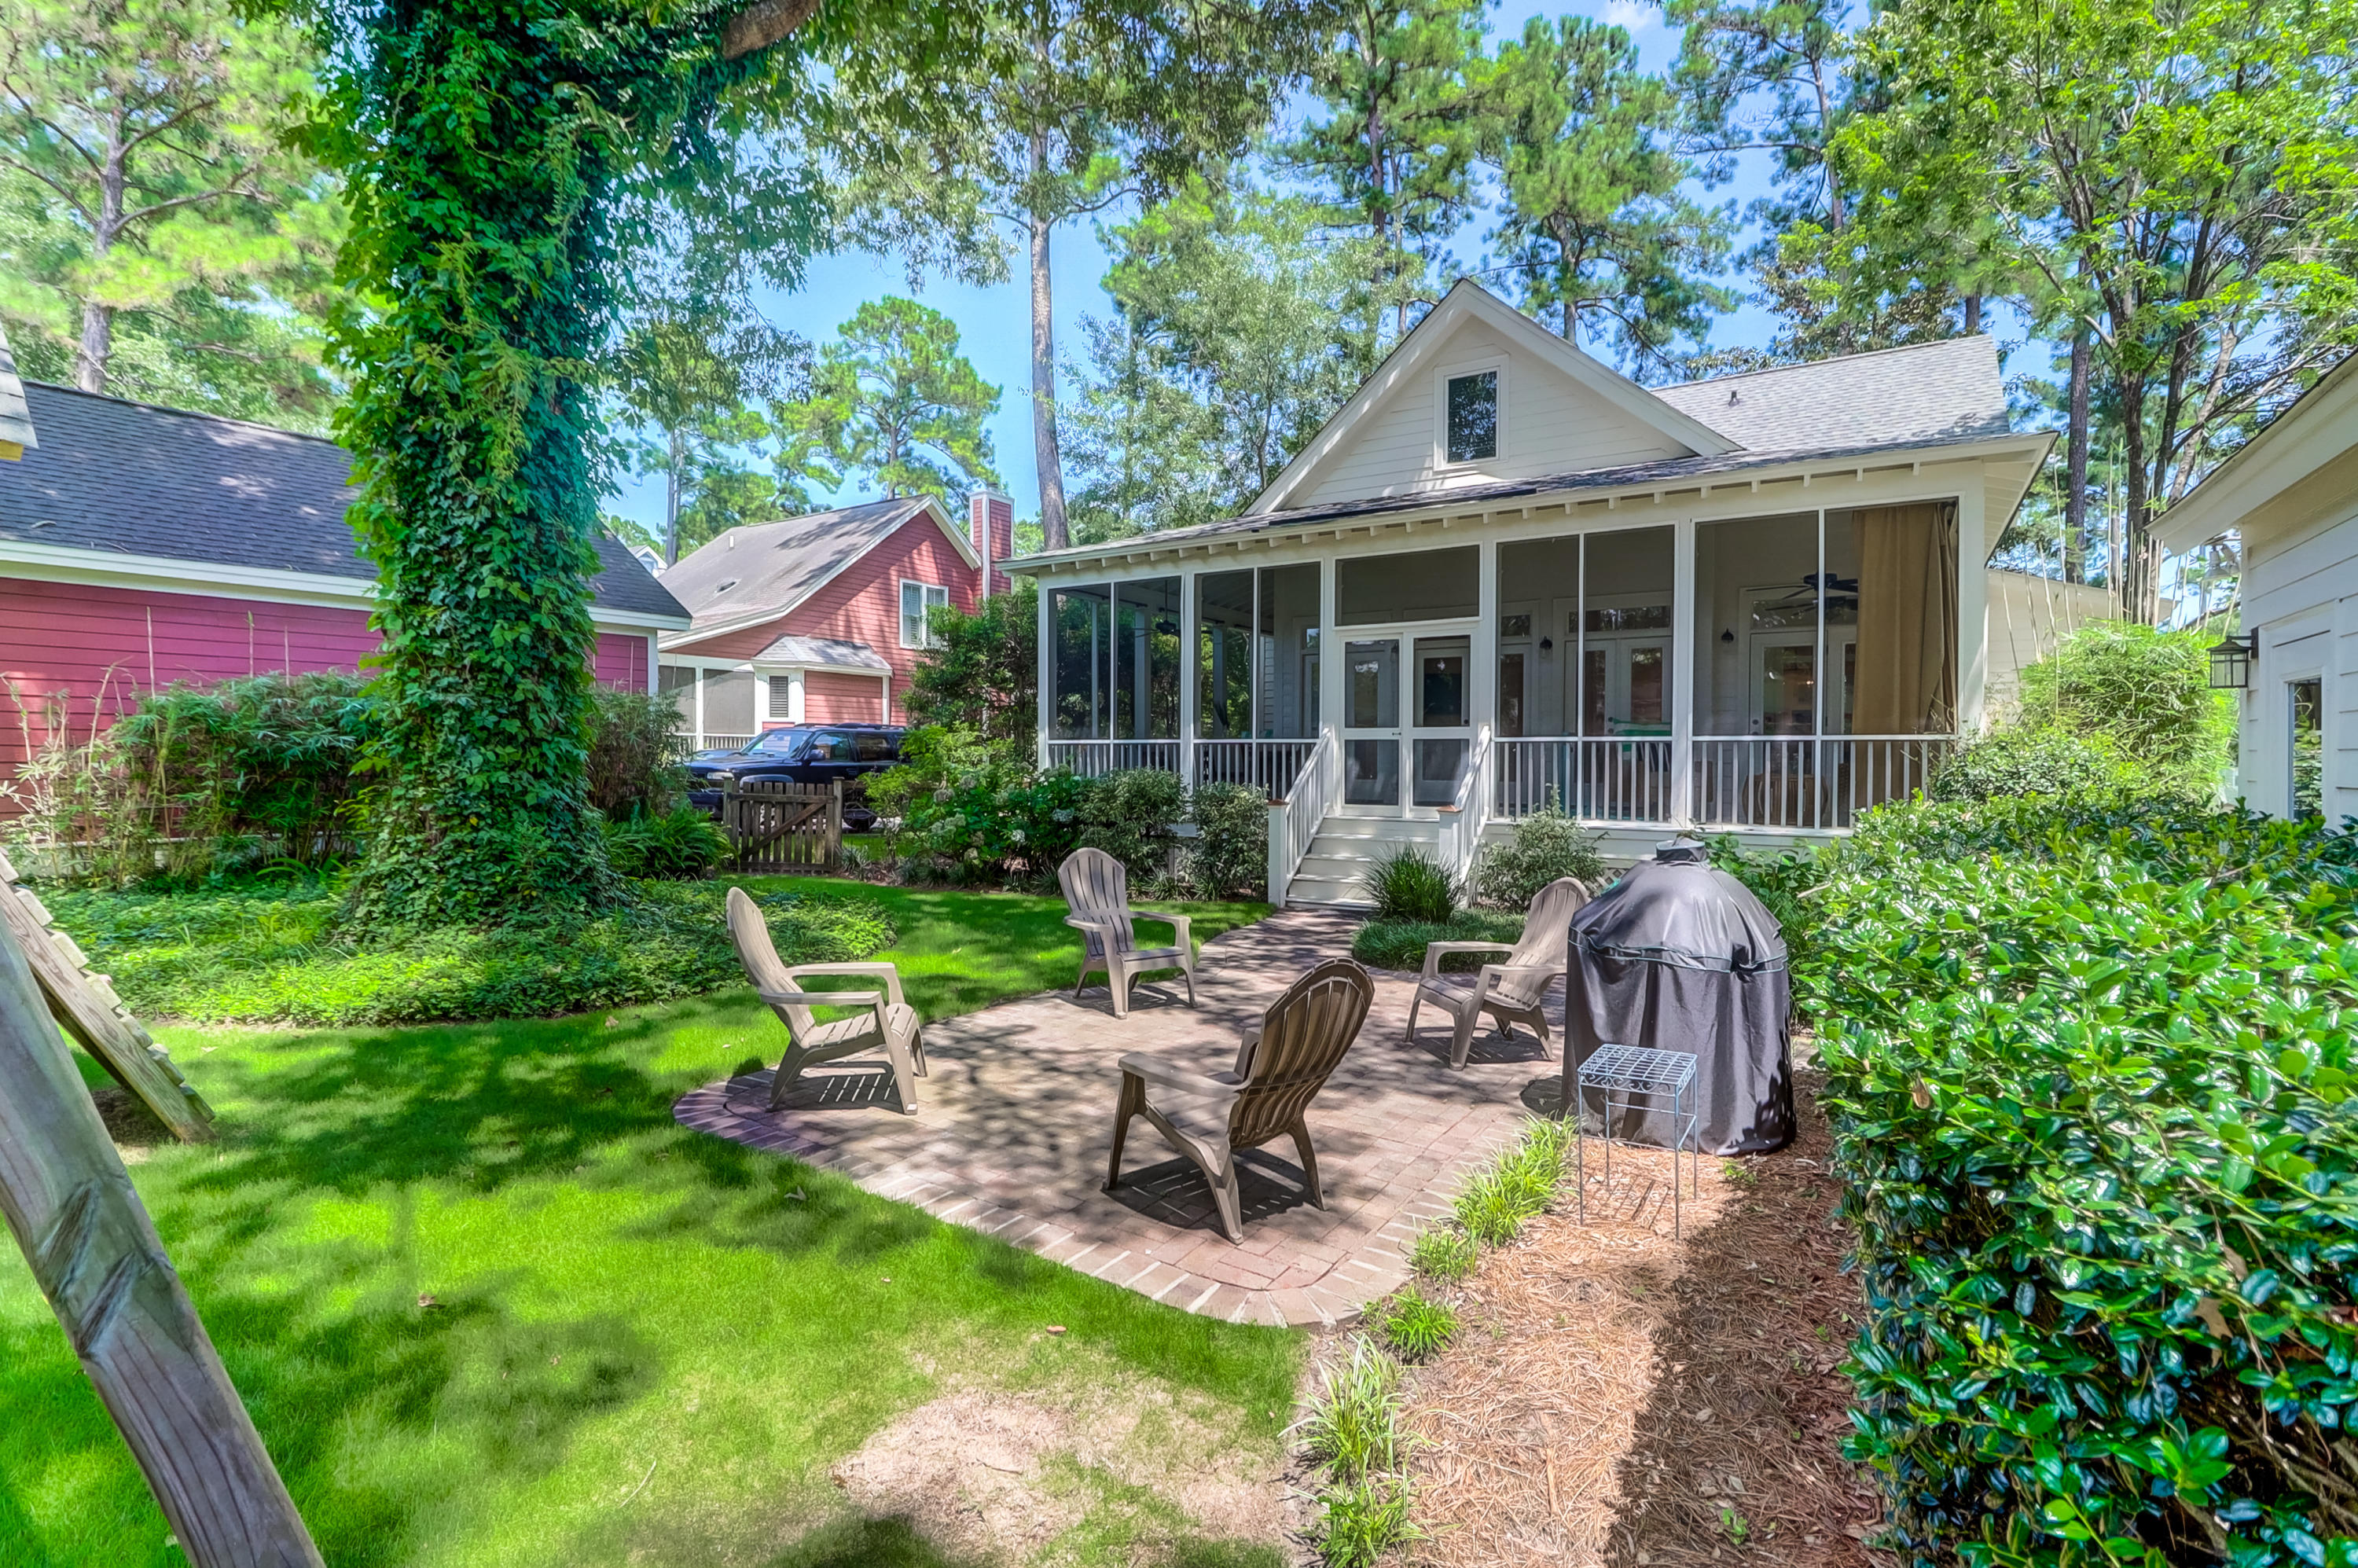 The Villages In St Johns Woods Homes For Sale - 5056 Coral Reef Dr, Johns Island, SC - 53